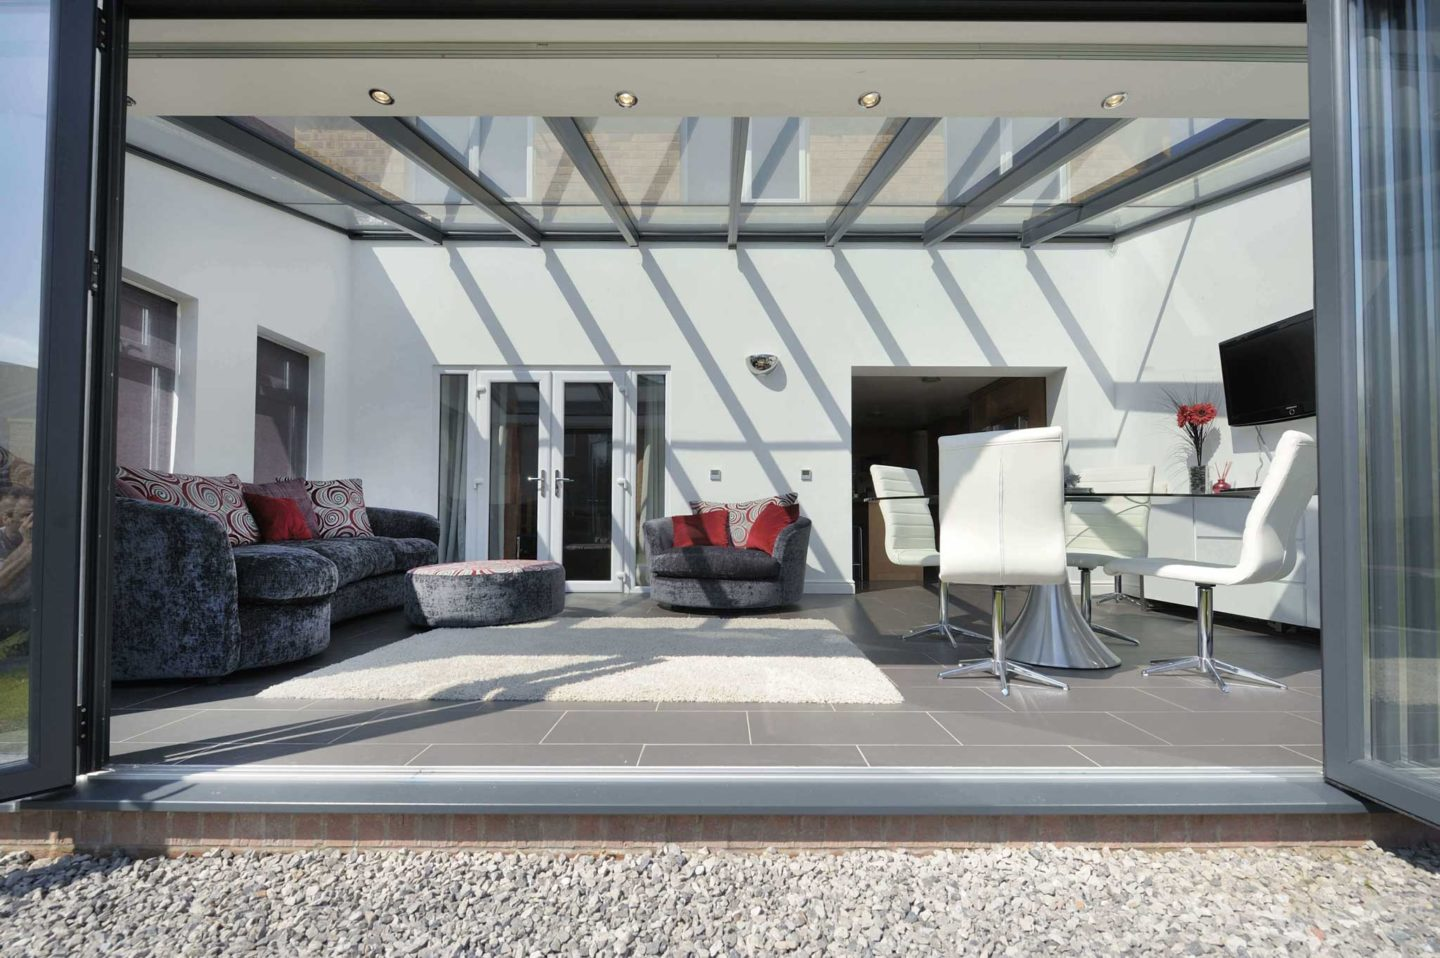 Double Glazing Costs in Colne